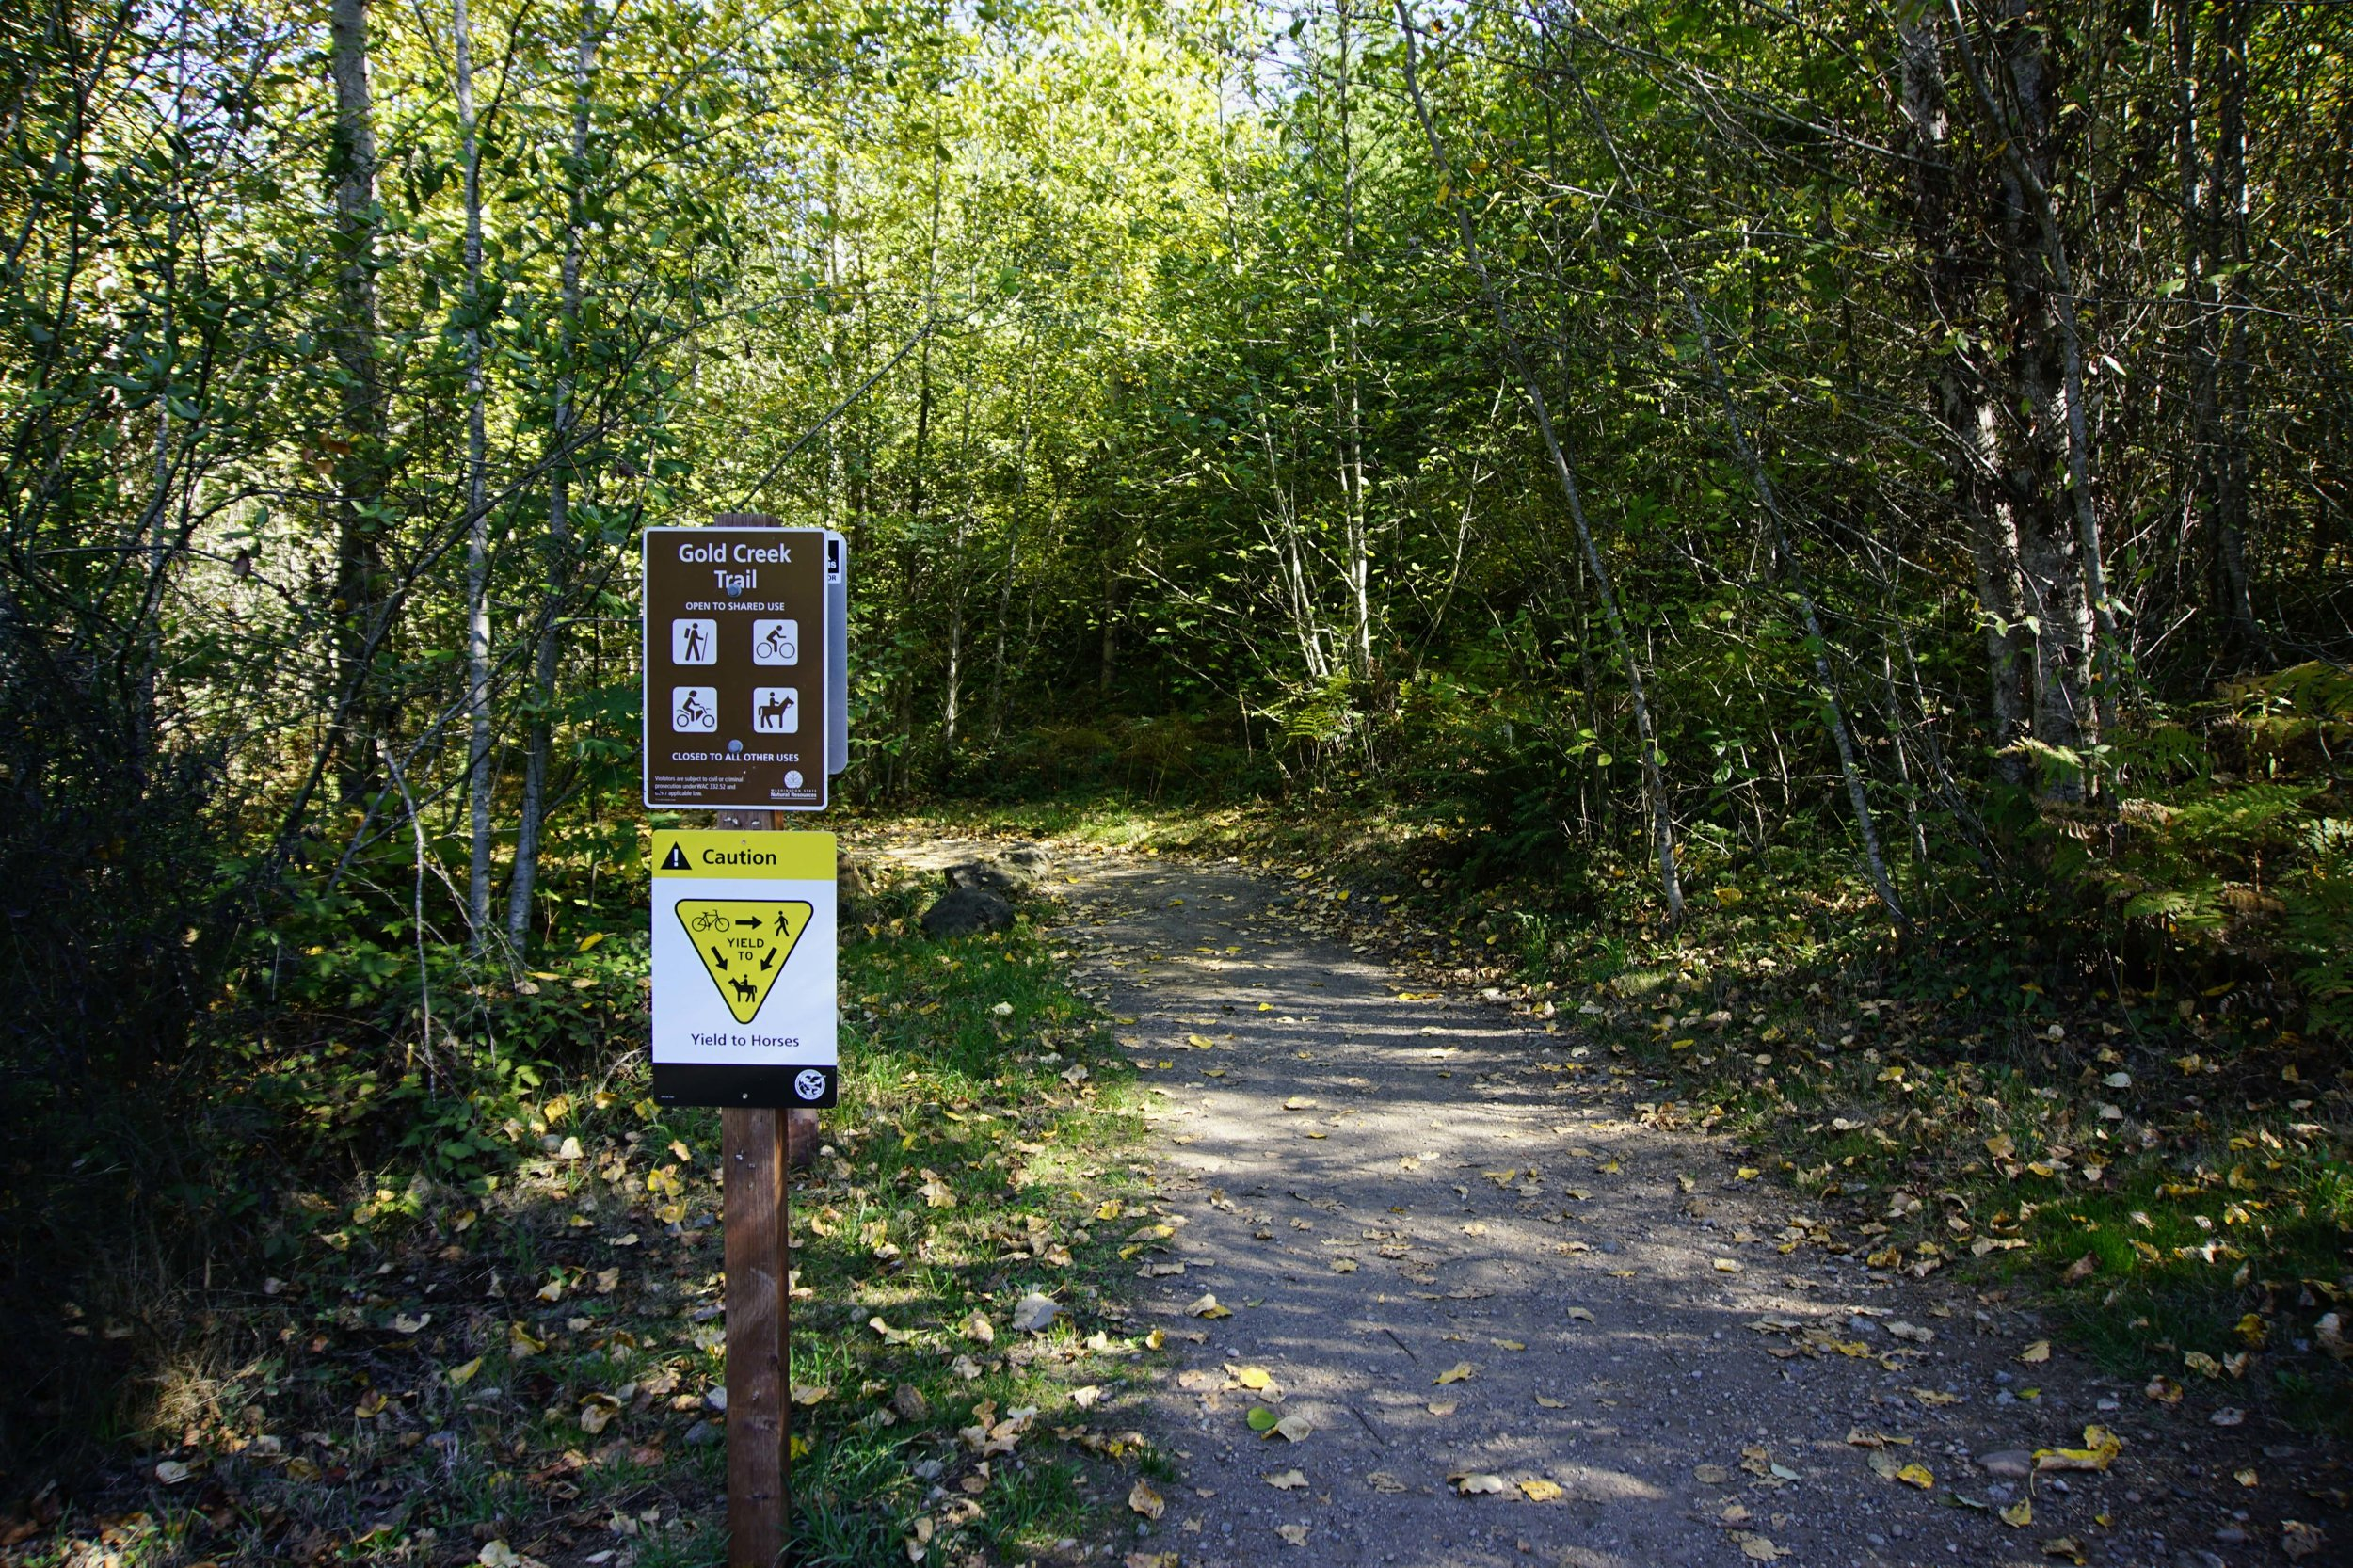 Gold Creek Trail trailhead